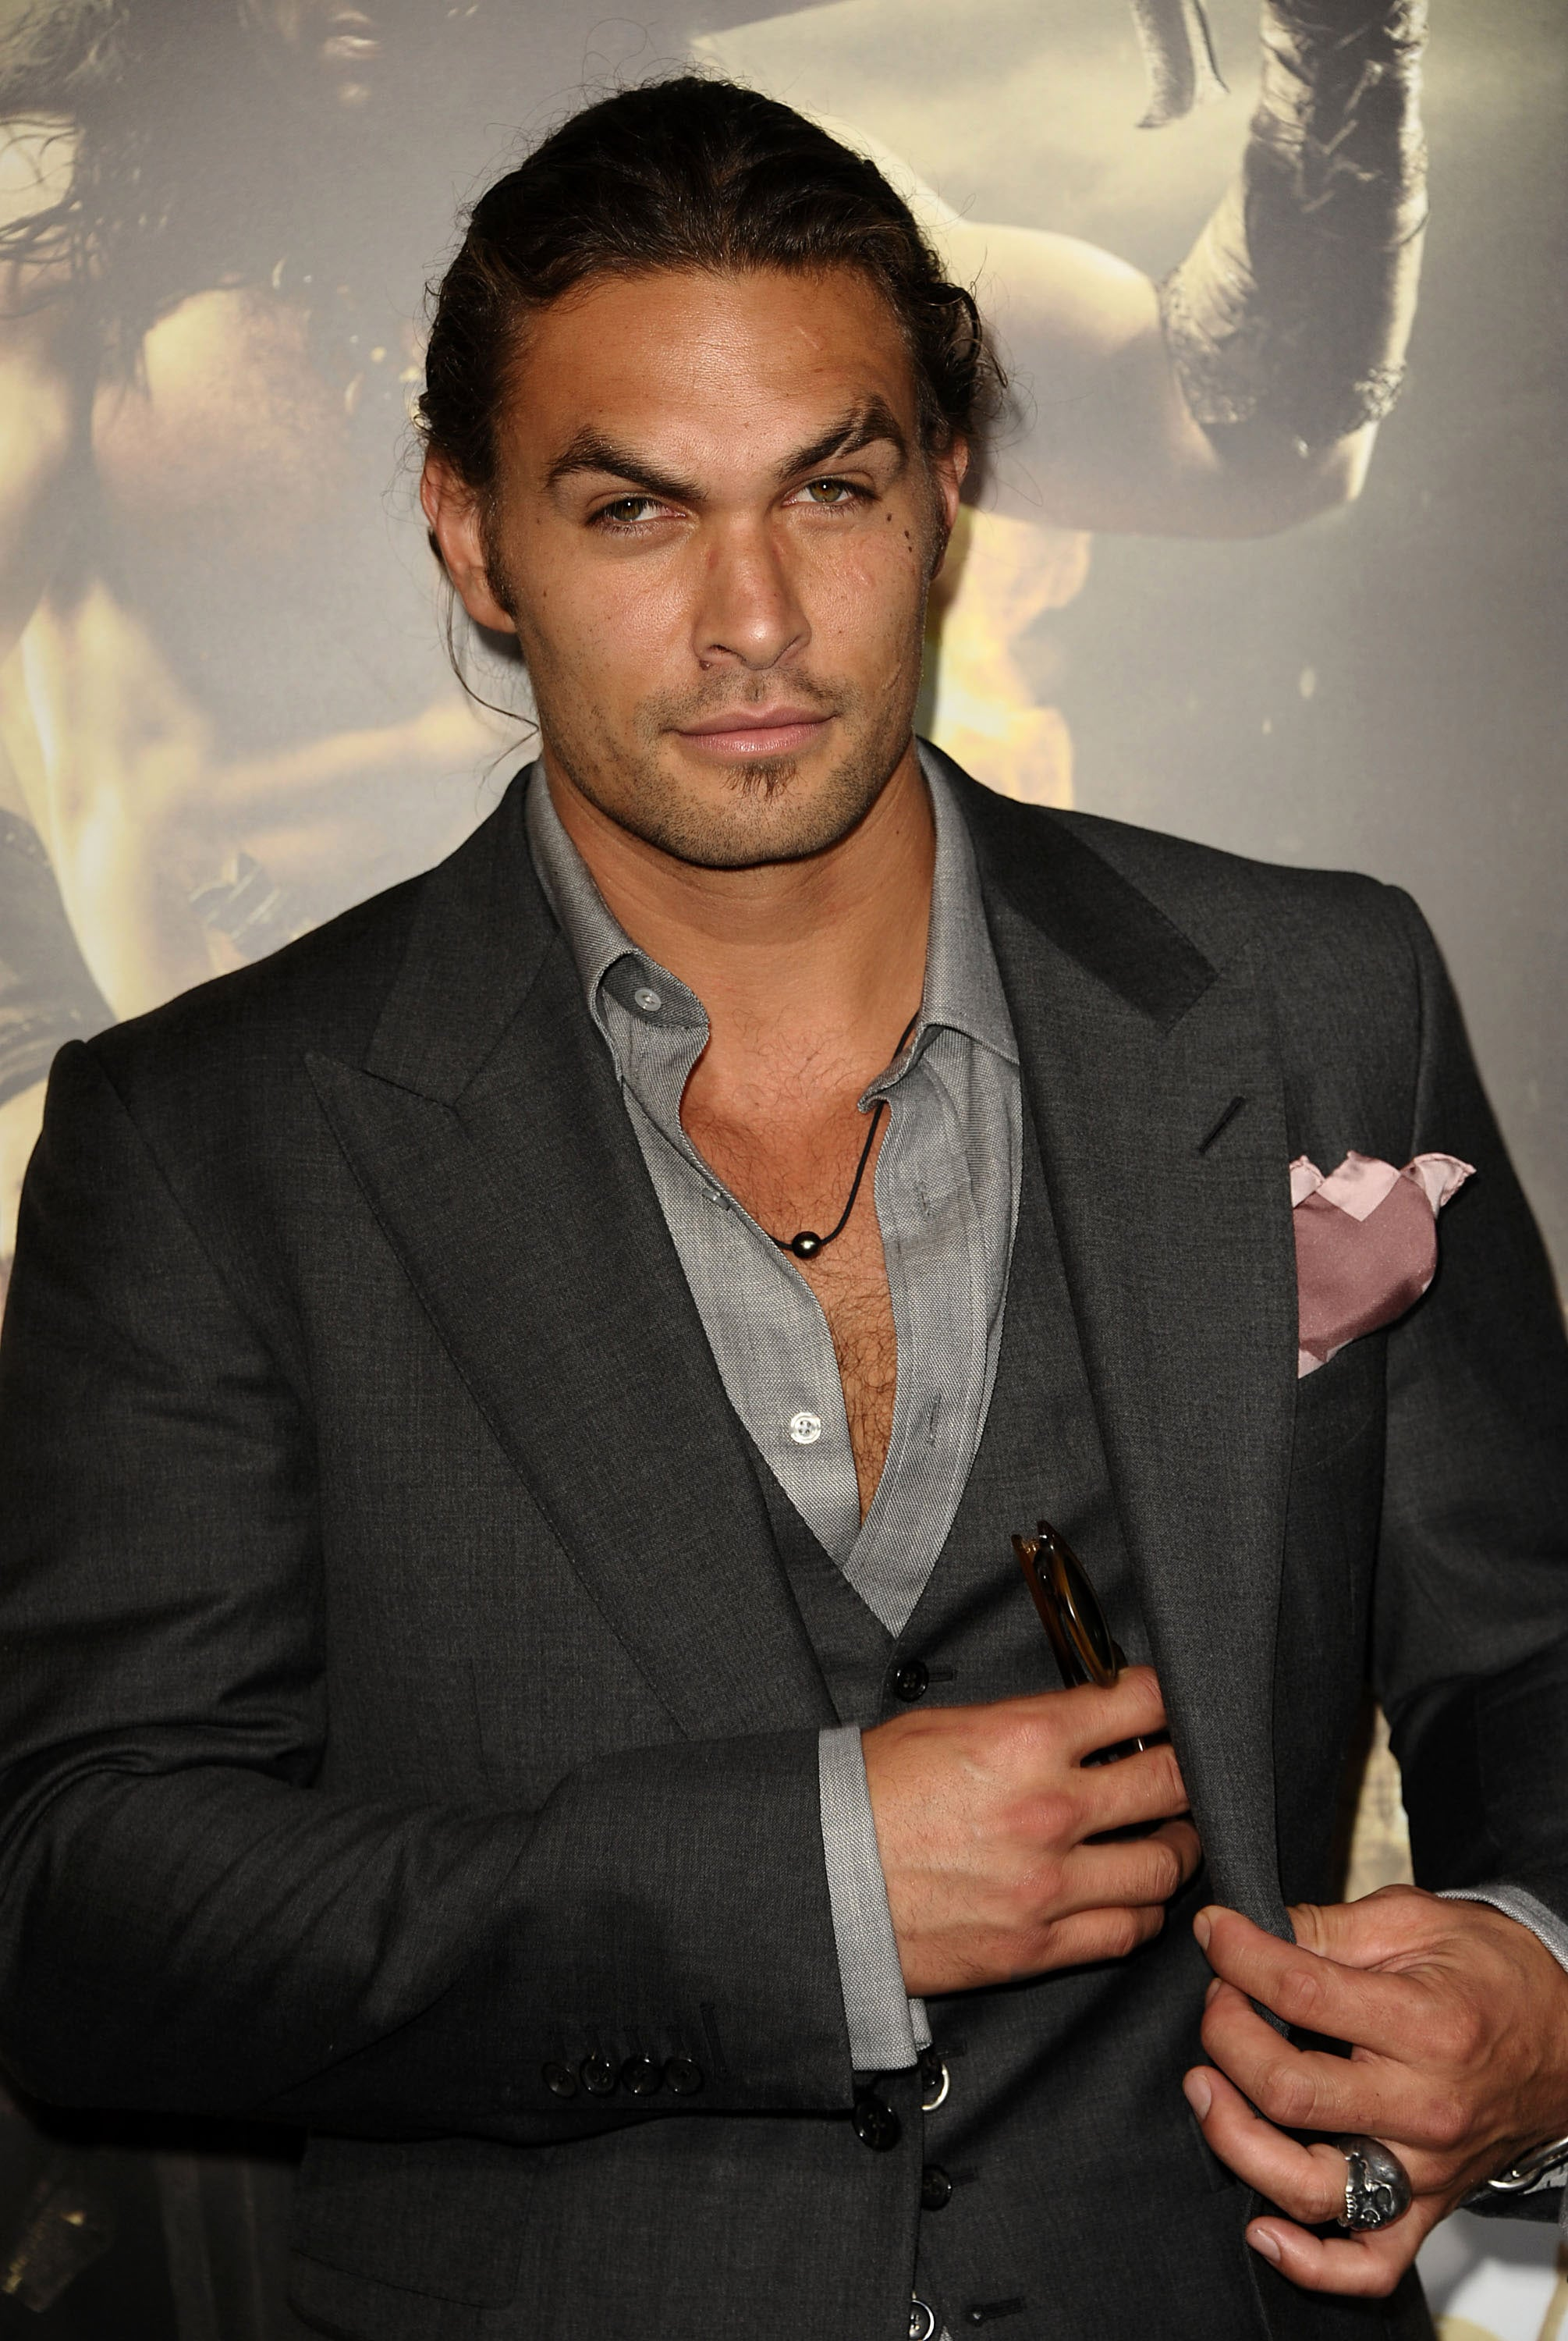 jason momoa - photo #21